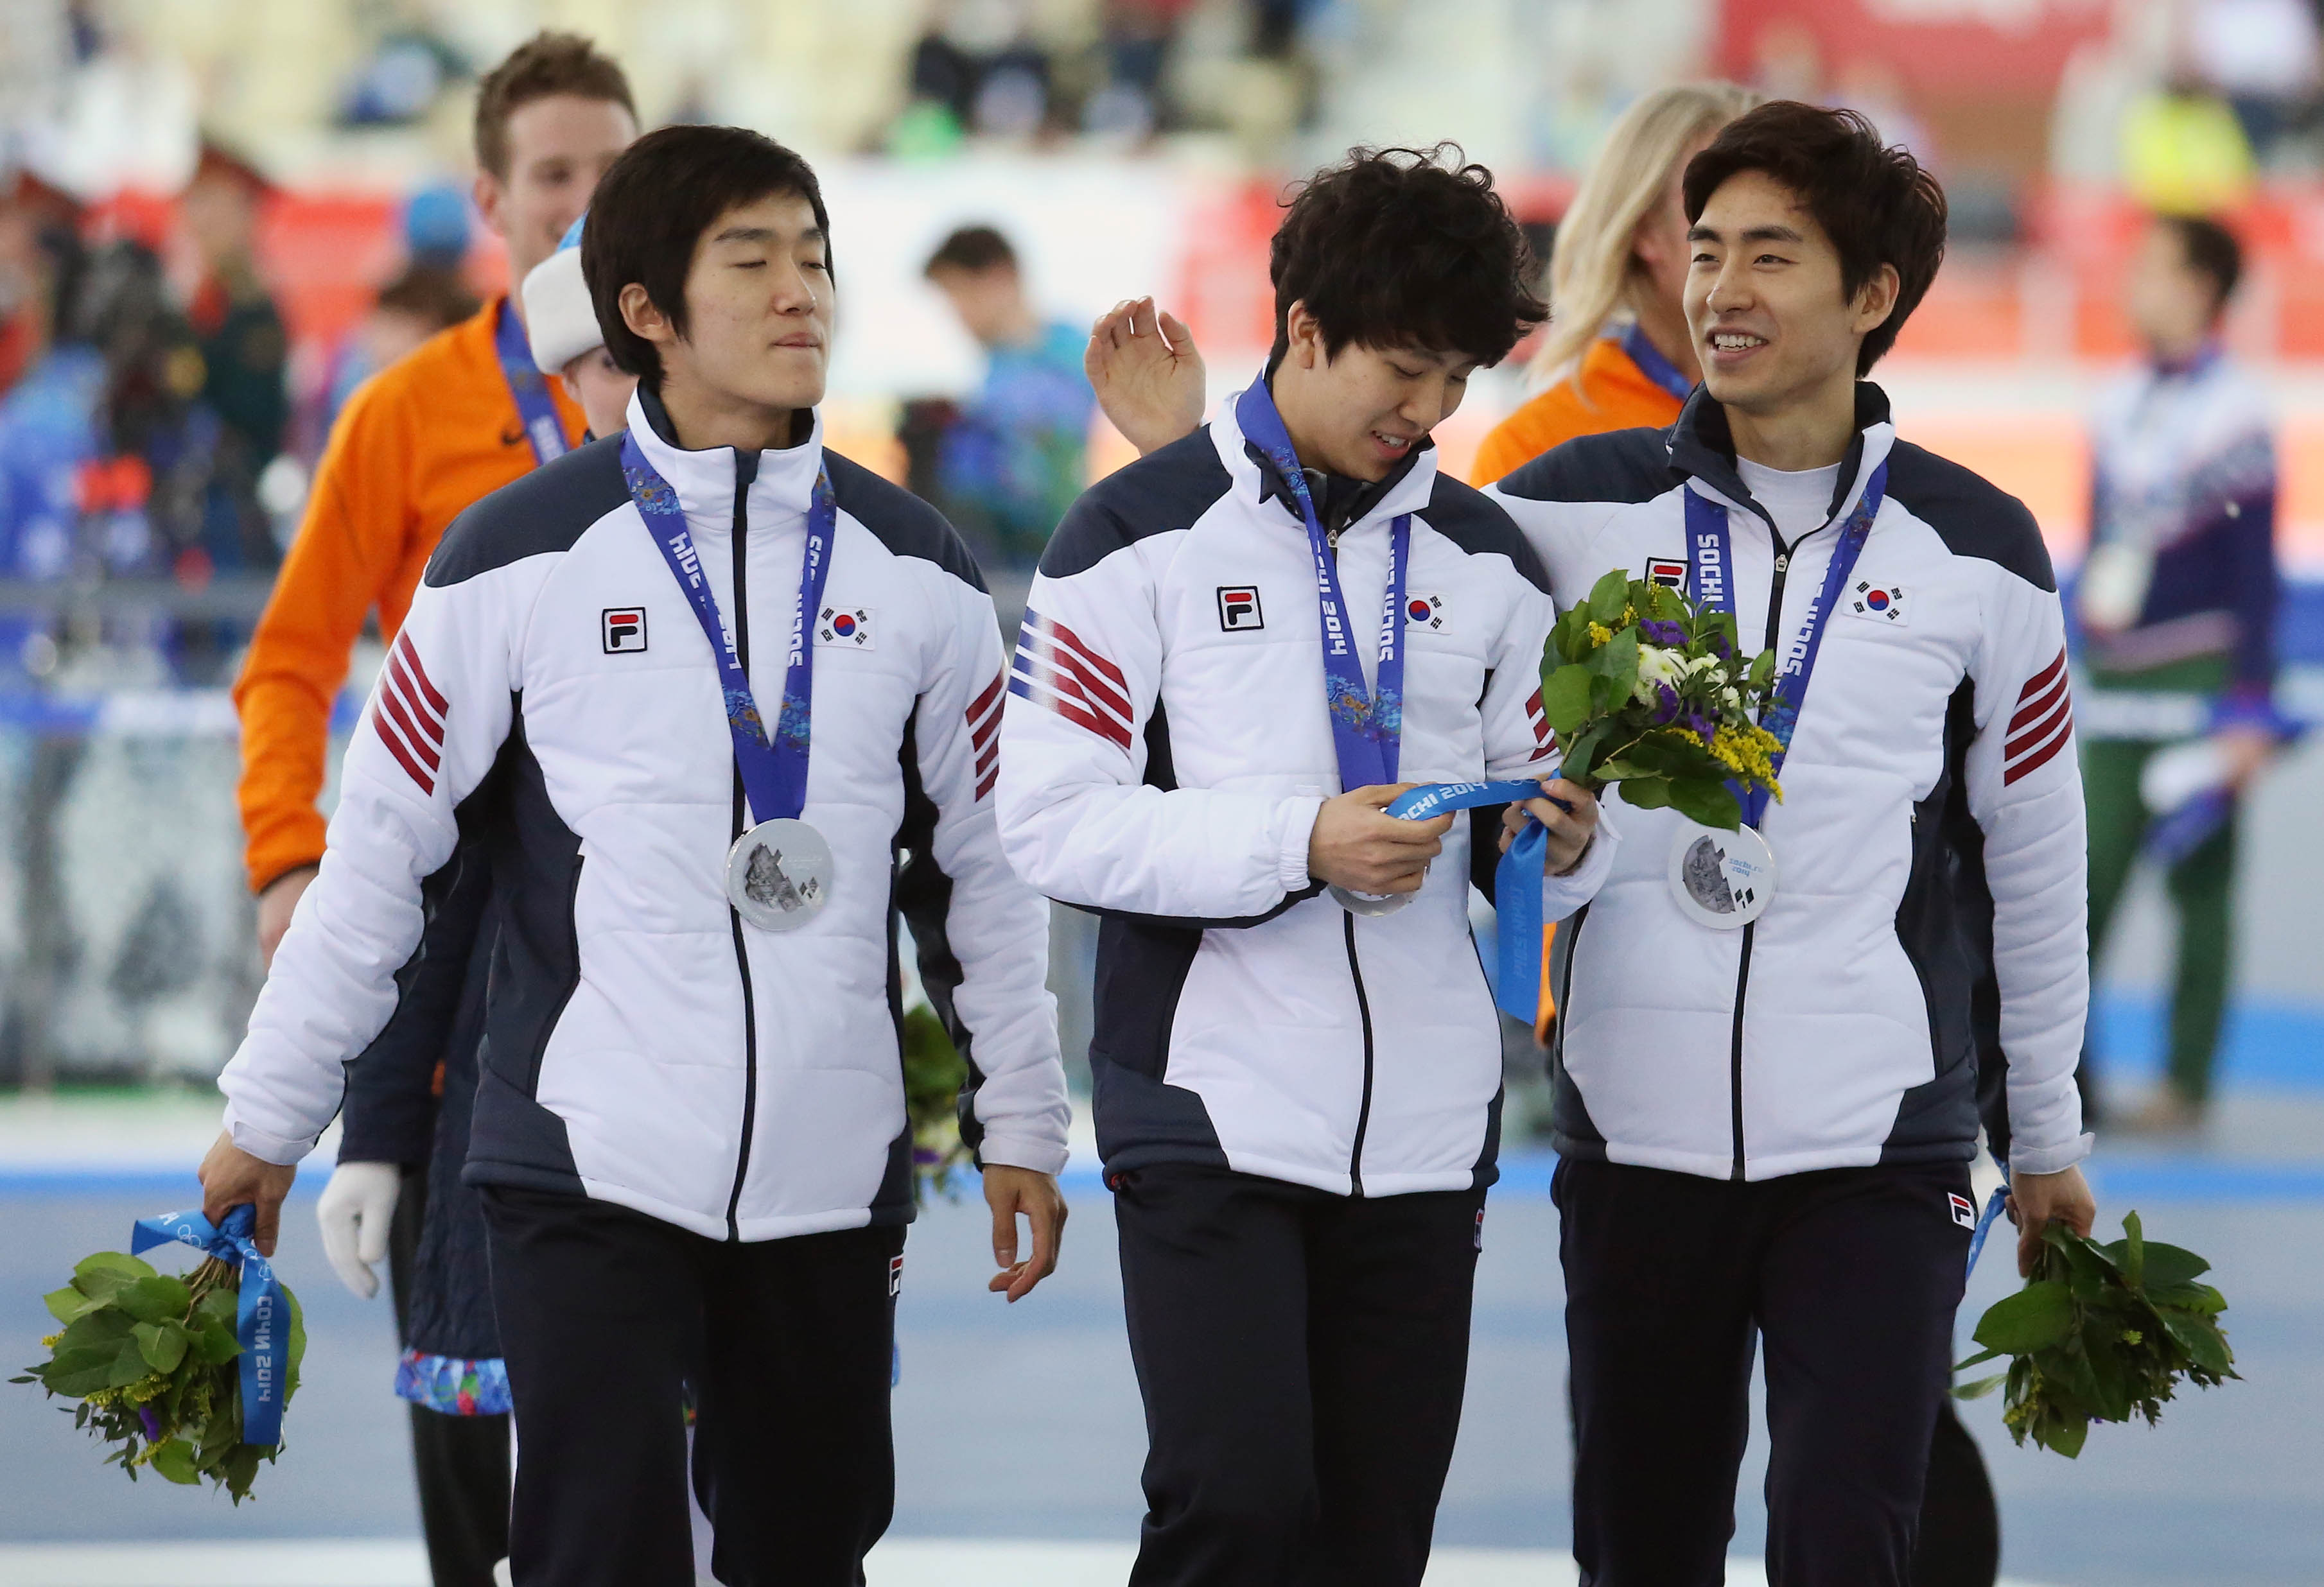 Lee Seung-hoon, from right,  Kim Cheol-min and Joo Hyong-jun smile after getting their silver medals. (Yonhap)